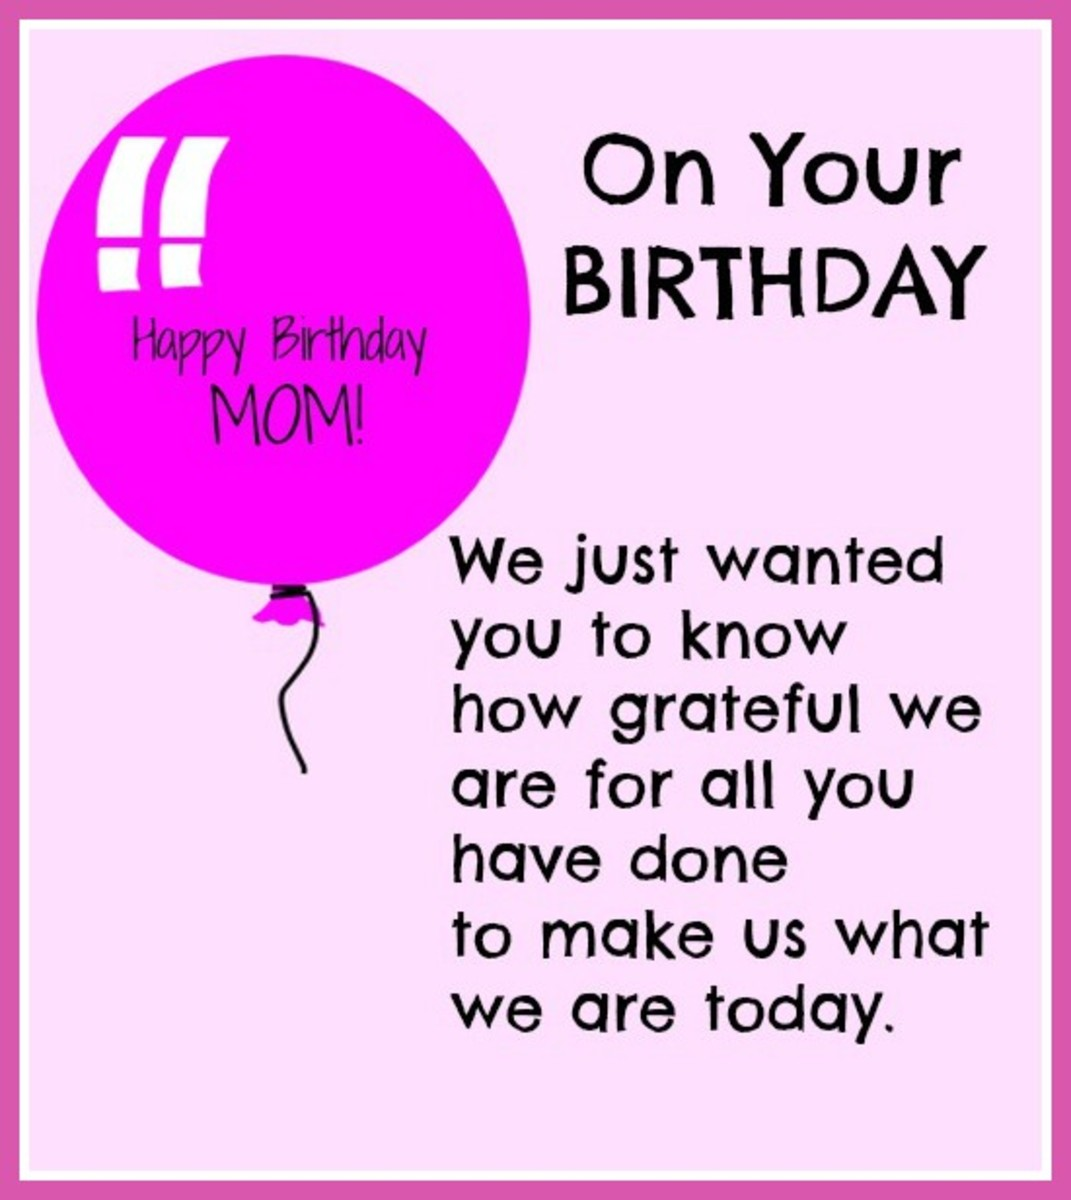 HAPPY BIRTHDAY MOM Birthday Wishes for Mom Funny Cards and Quotes OzaP0rIa